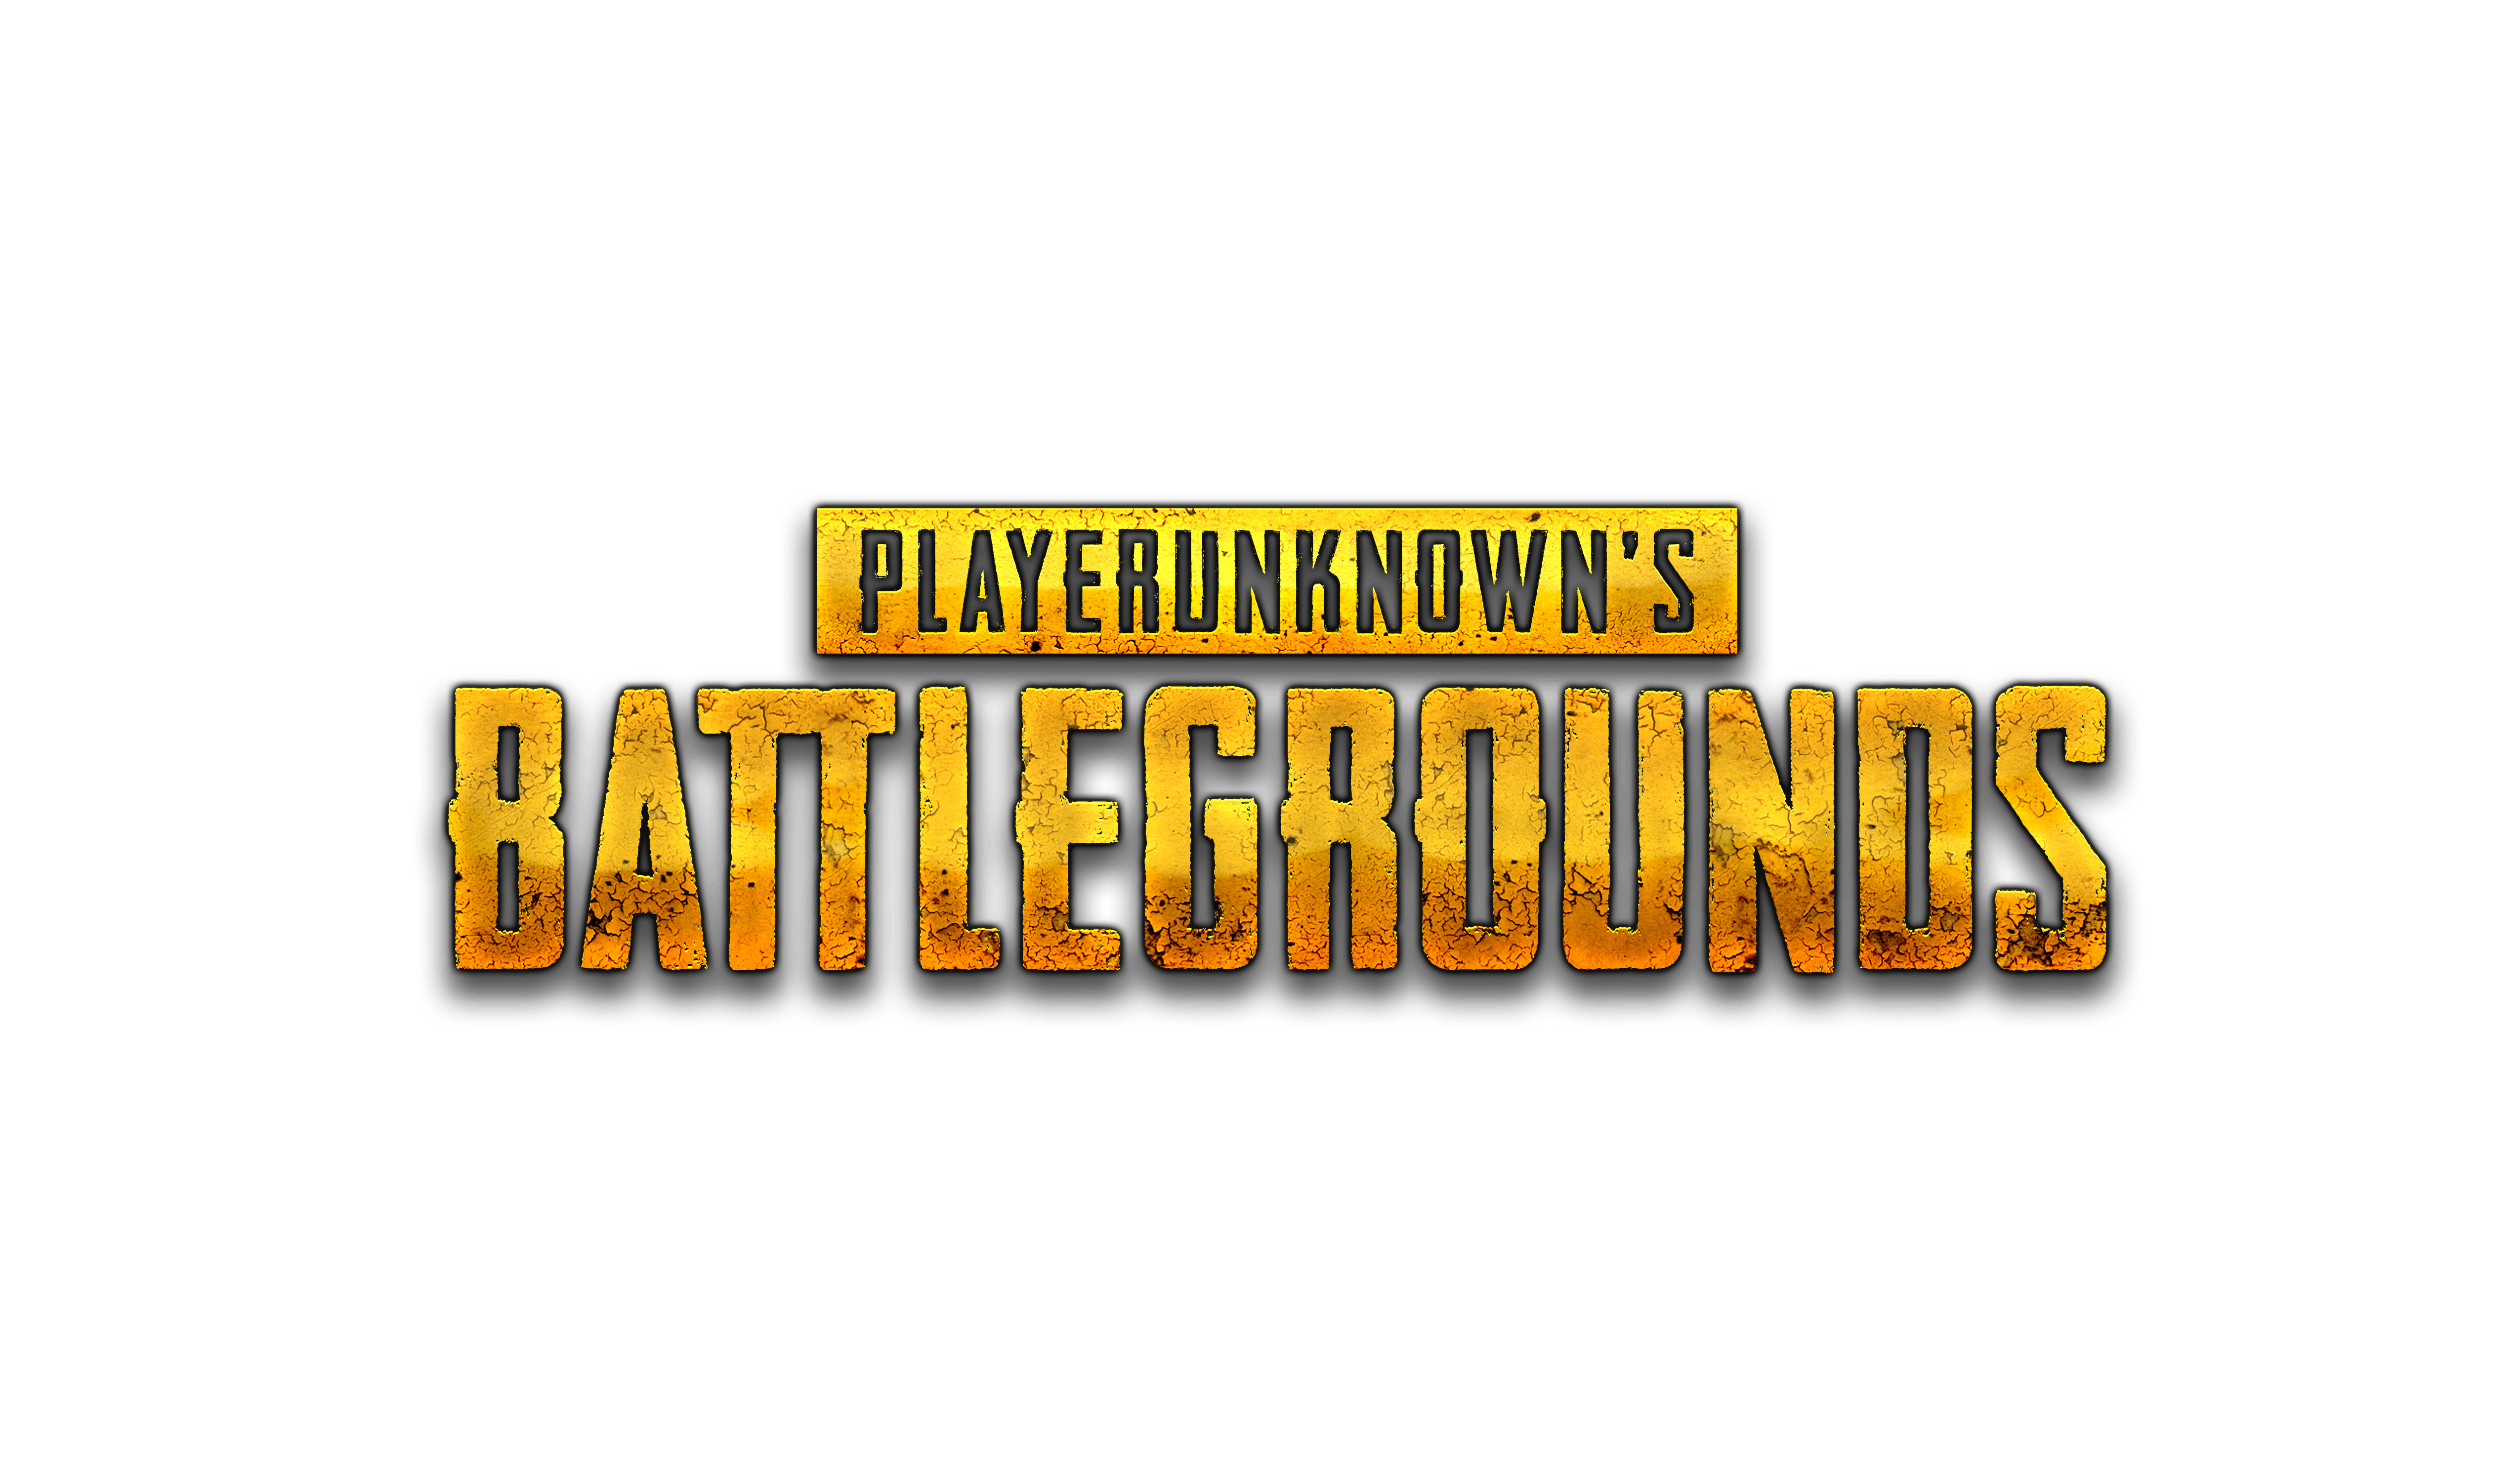 Playerunknown\'s Battlegrounds Logo (pubg) PNG Image.